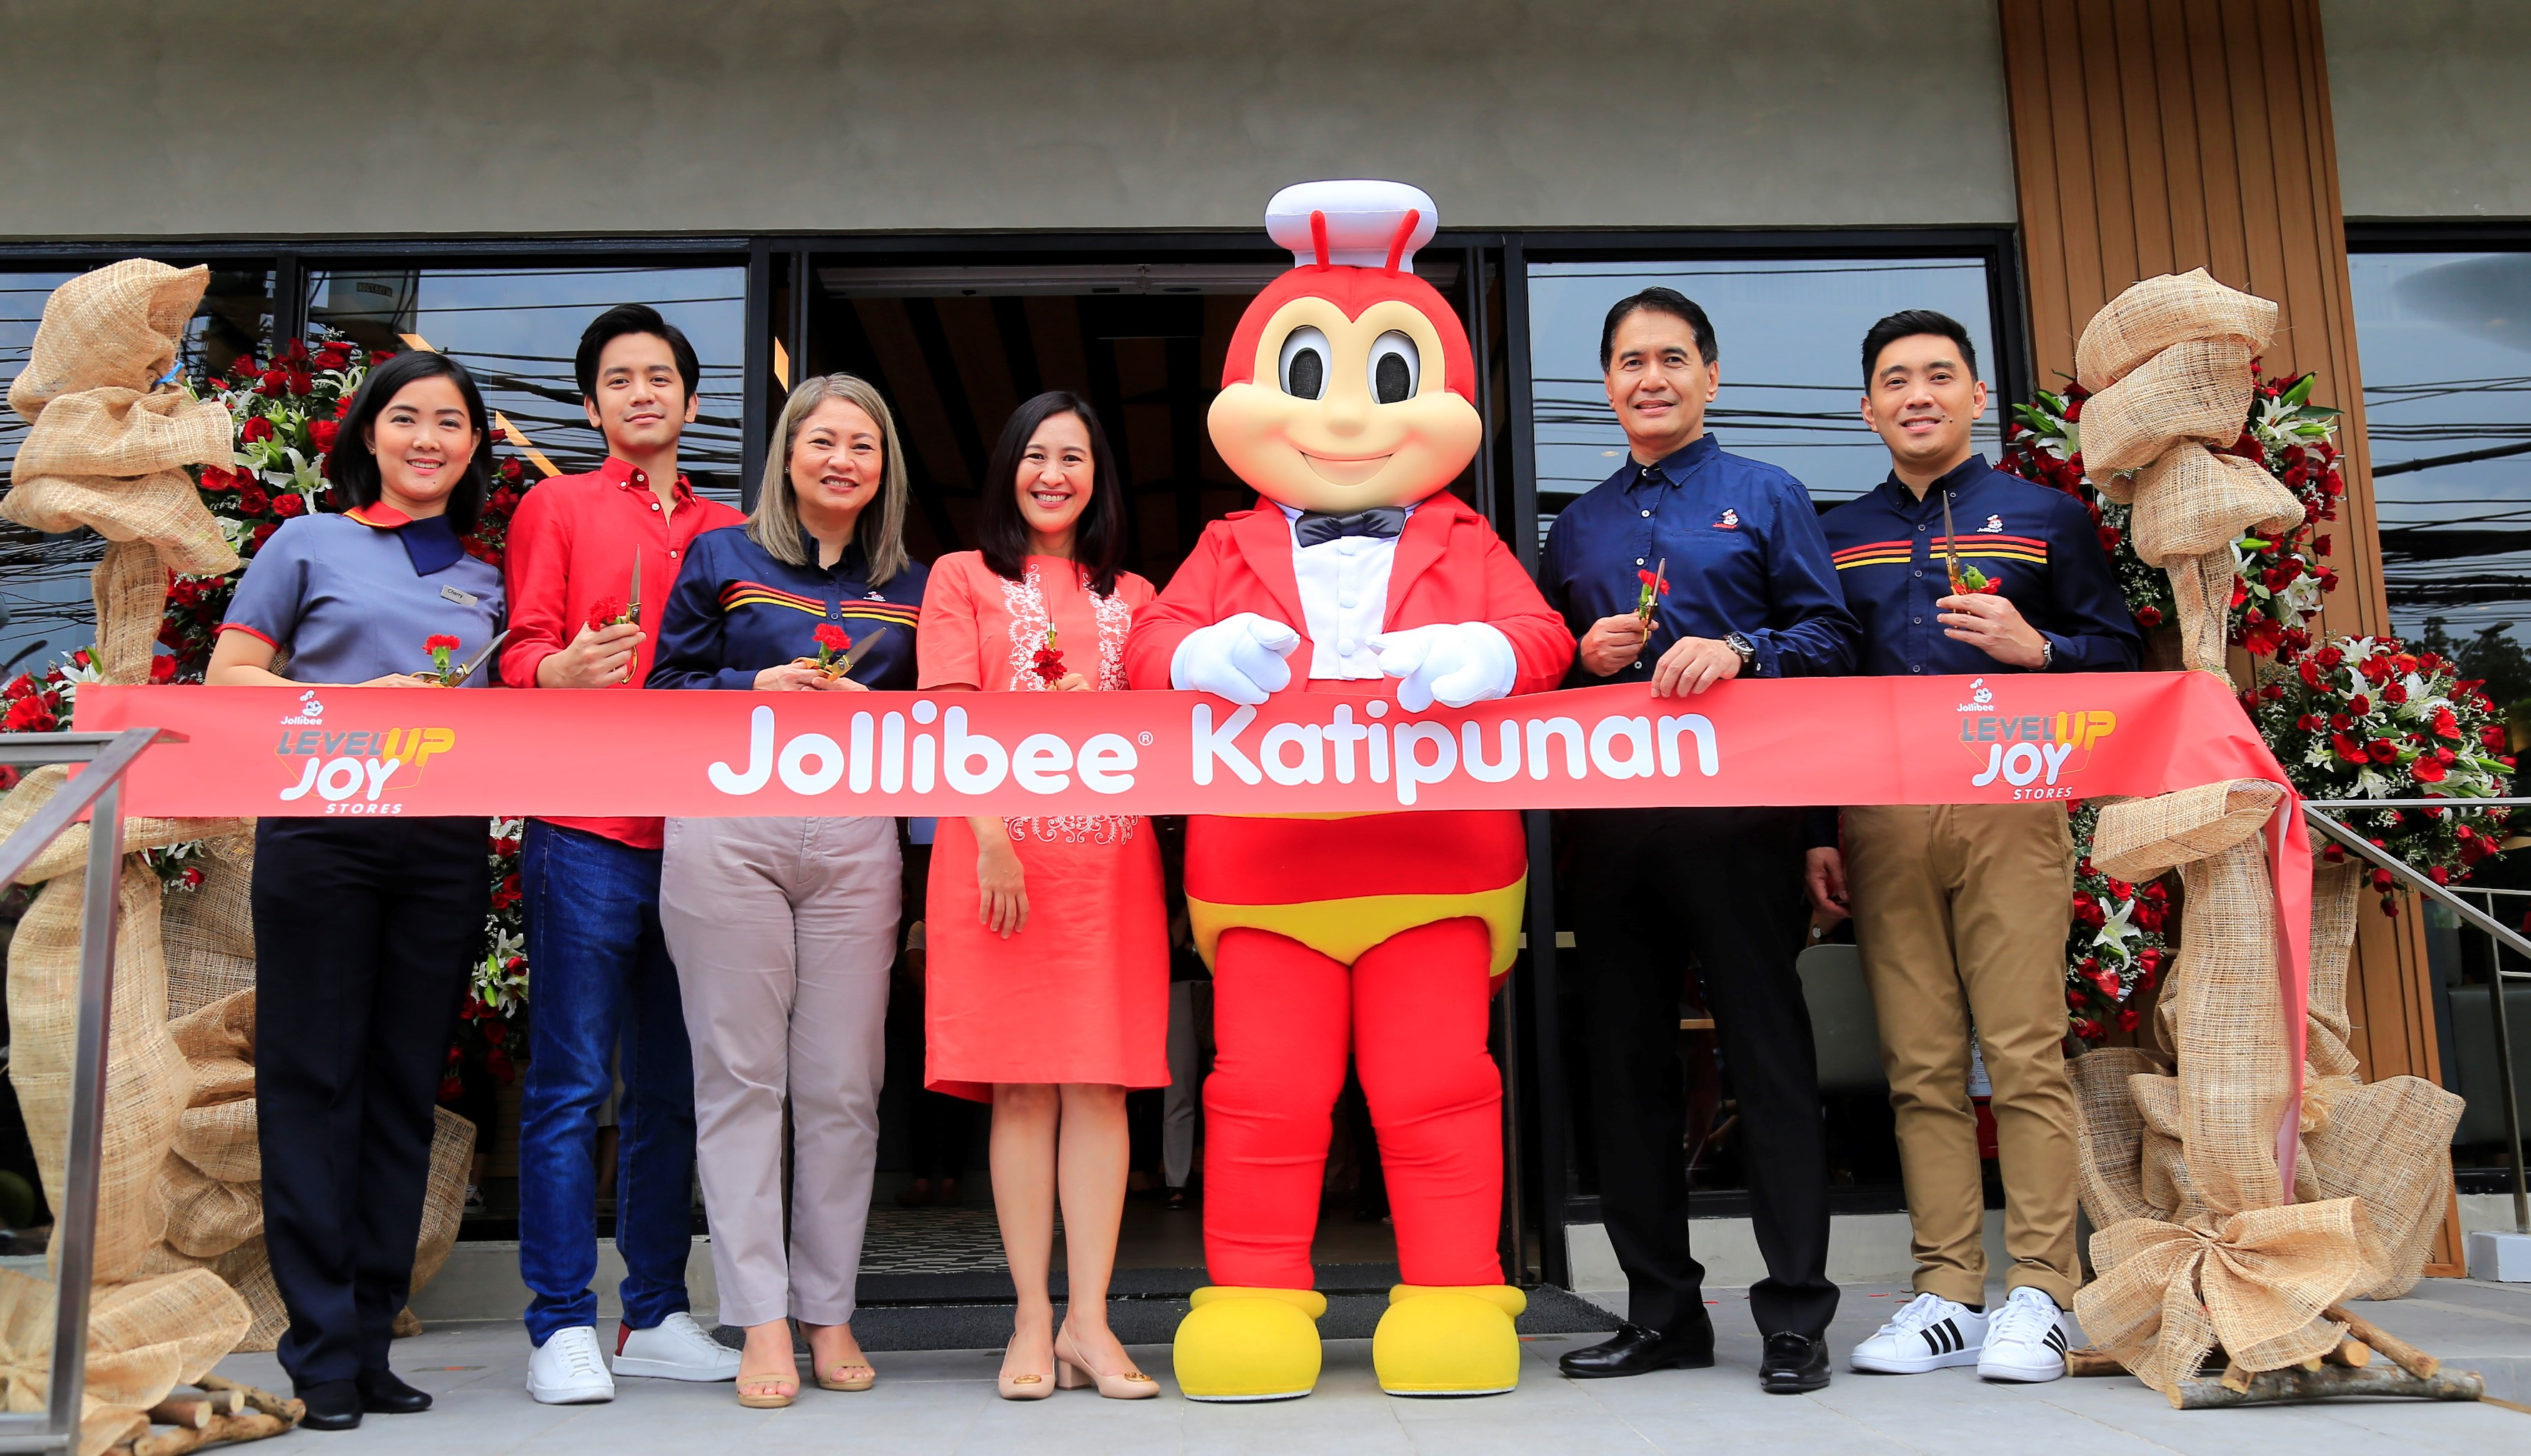 LEVEL UP JOY STORE. (L-R) Jollibee Katipunan Restaurant Manager Cherry Chua, brand ambassador Joshua Garcia, Jollibee Philippines Metro North RBU Head Joan Aquino, Quezon City Mayor Joy Belmonte, Jollibee Philippines President JJ Alano, and Jollibee Global Brand CMO, JFC Philippines Country Business Group Marketing Head and Concurrent Jollibee Philippines Marketing Head Francis Flores. All photos courtesy of Jollibee.